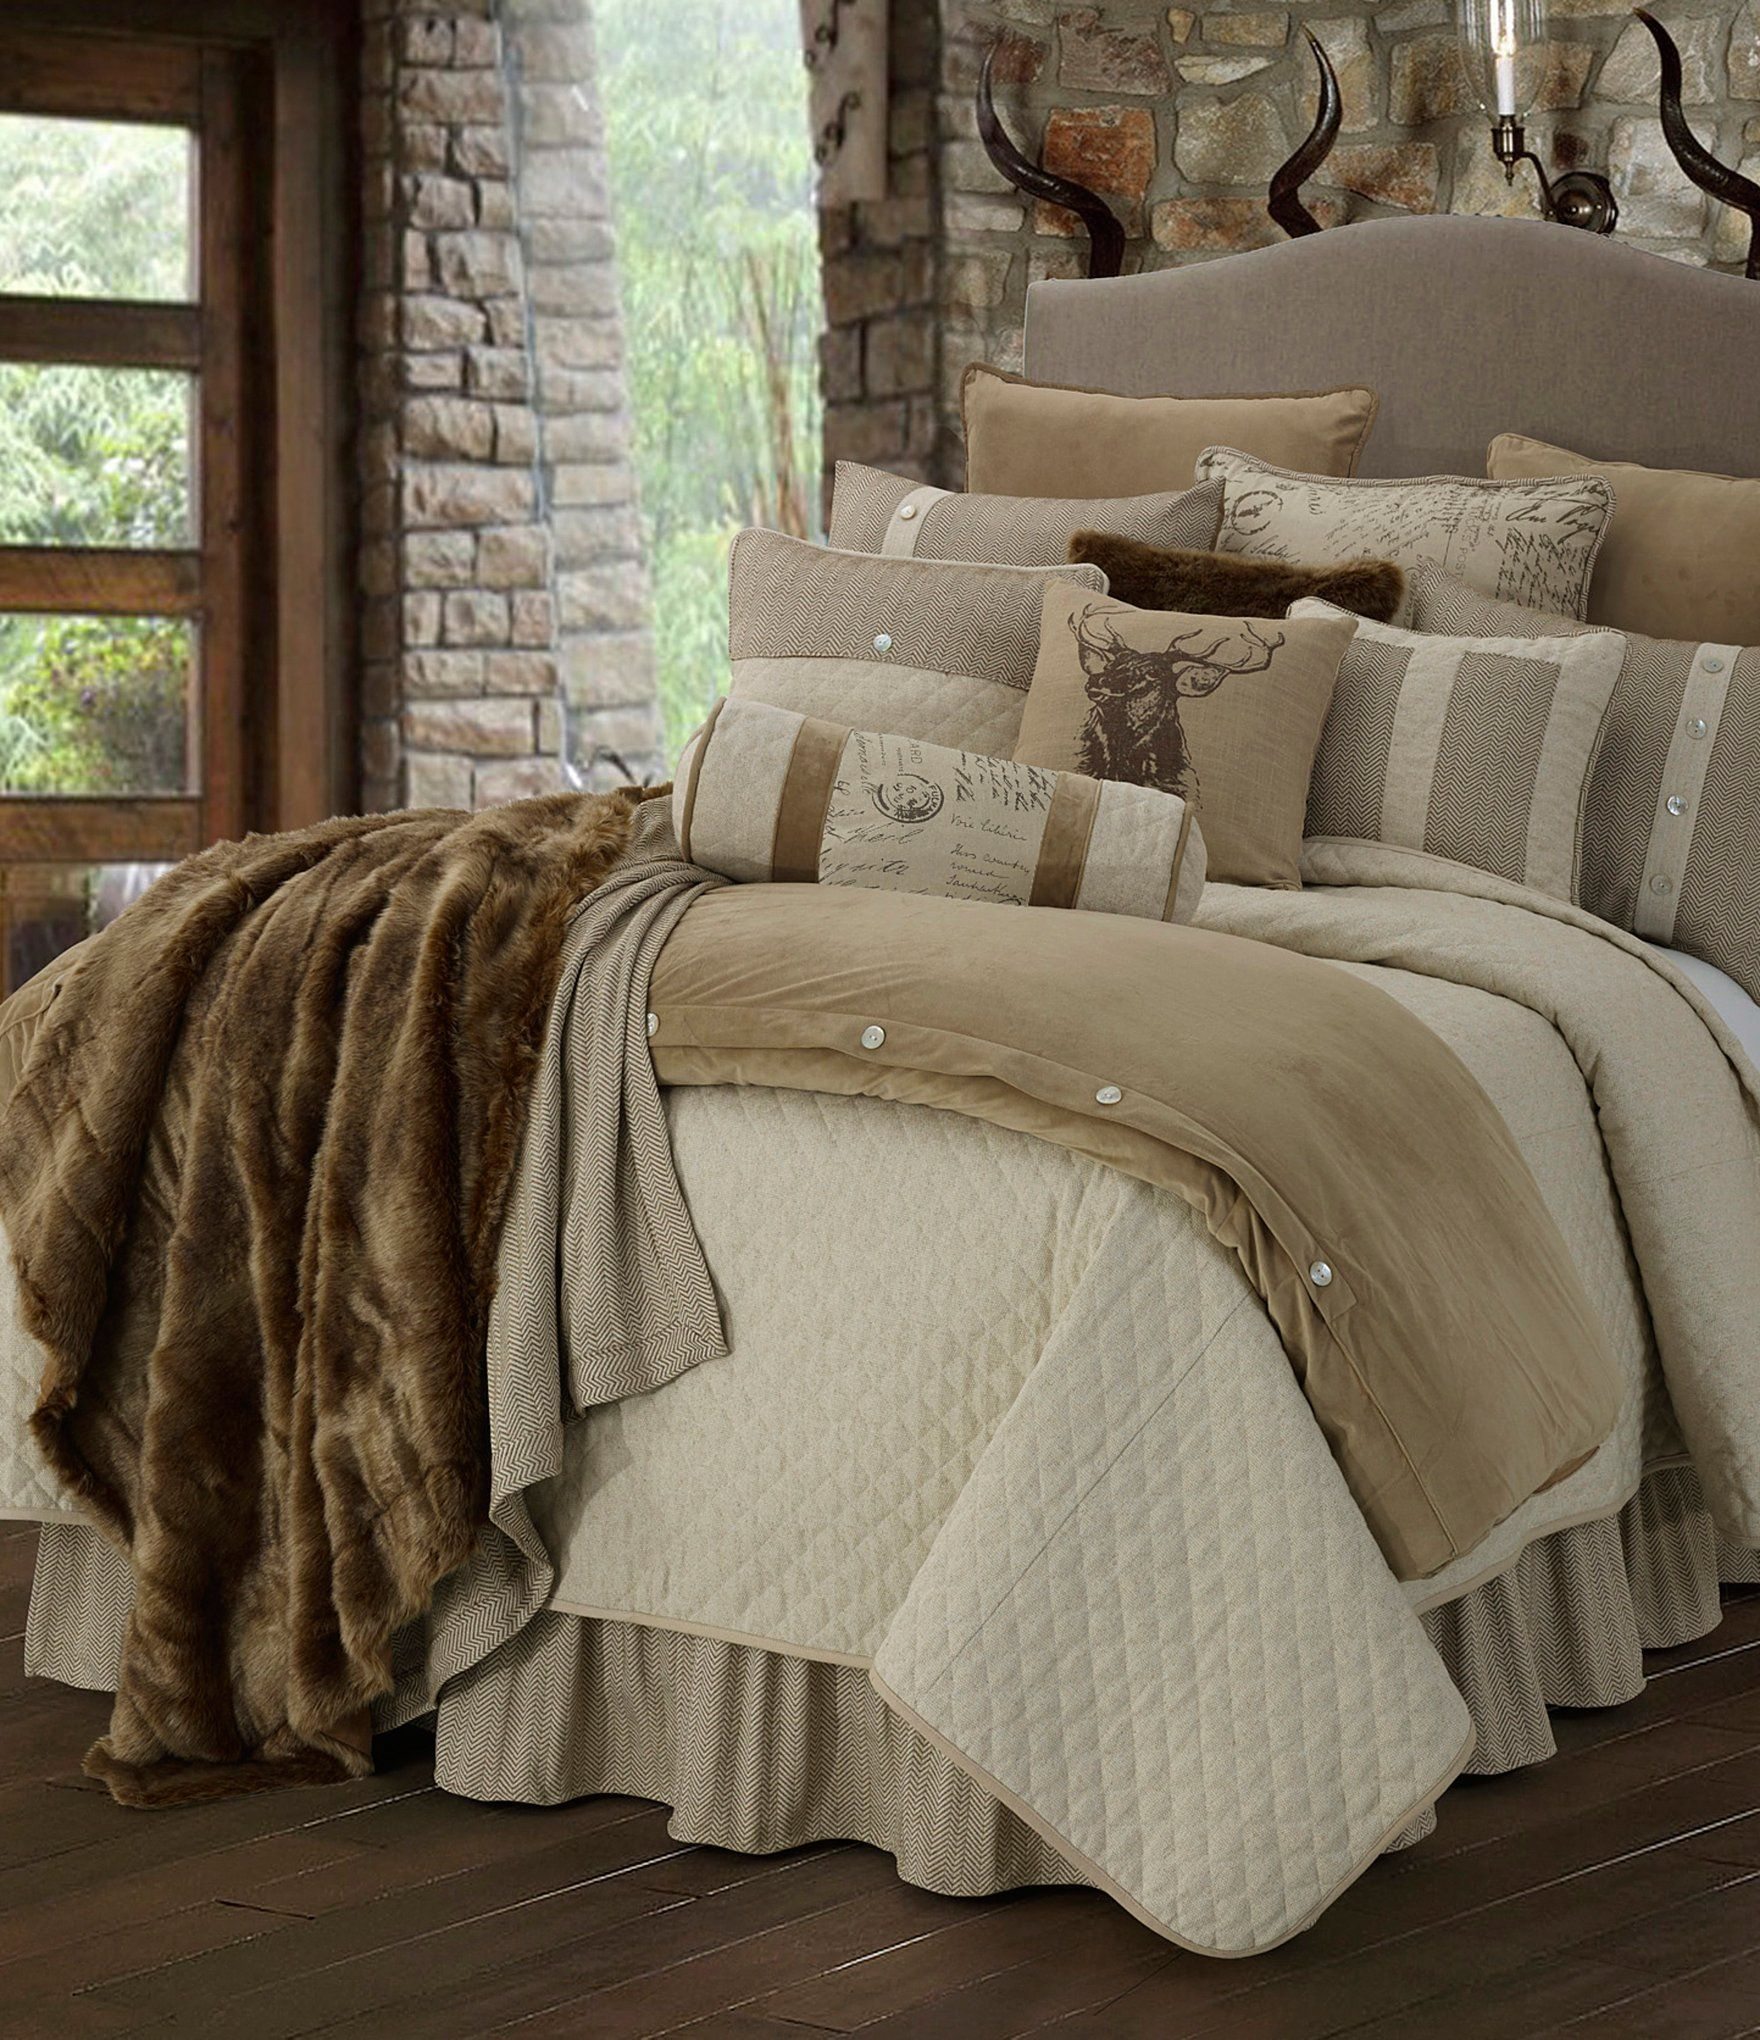 10 Bedroom Interior Design Trends For This Year Tags Bedroom Interior Design Luxury Bedding Master Bedroom Bedding Sets Master Bedroom Rustic Bedding Sets